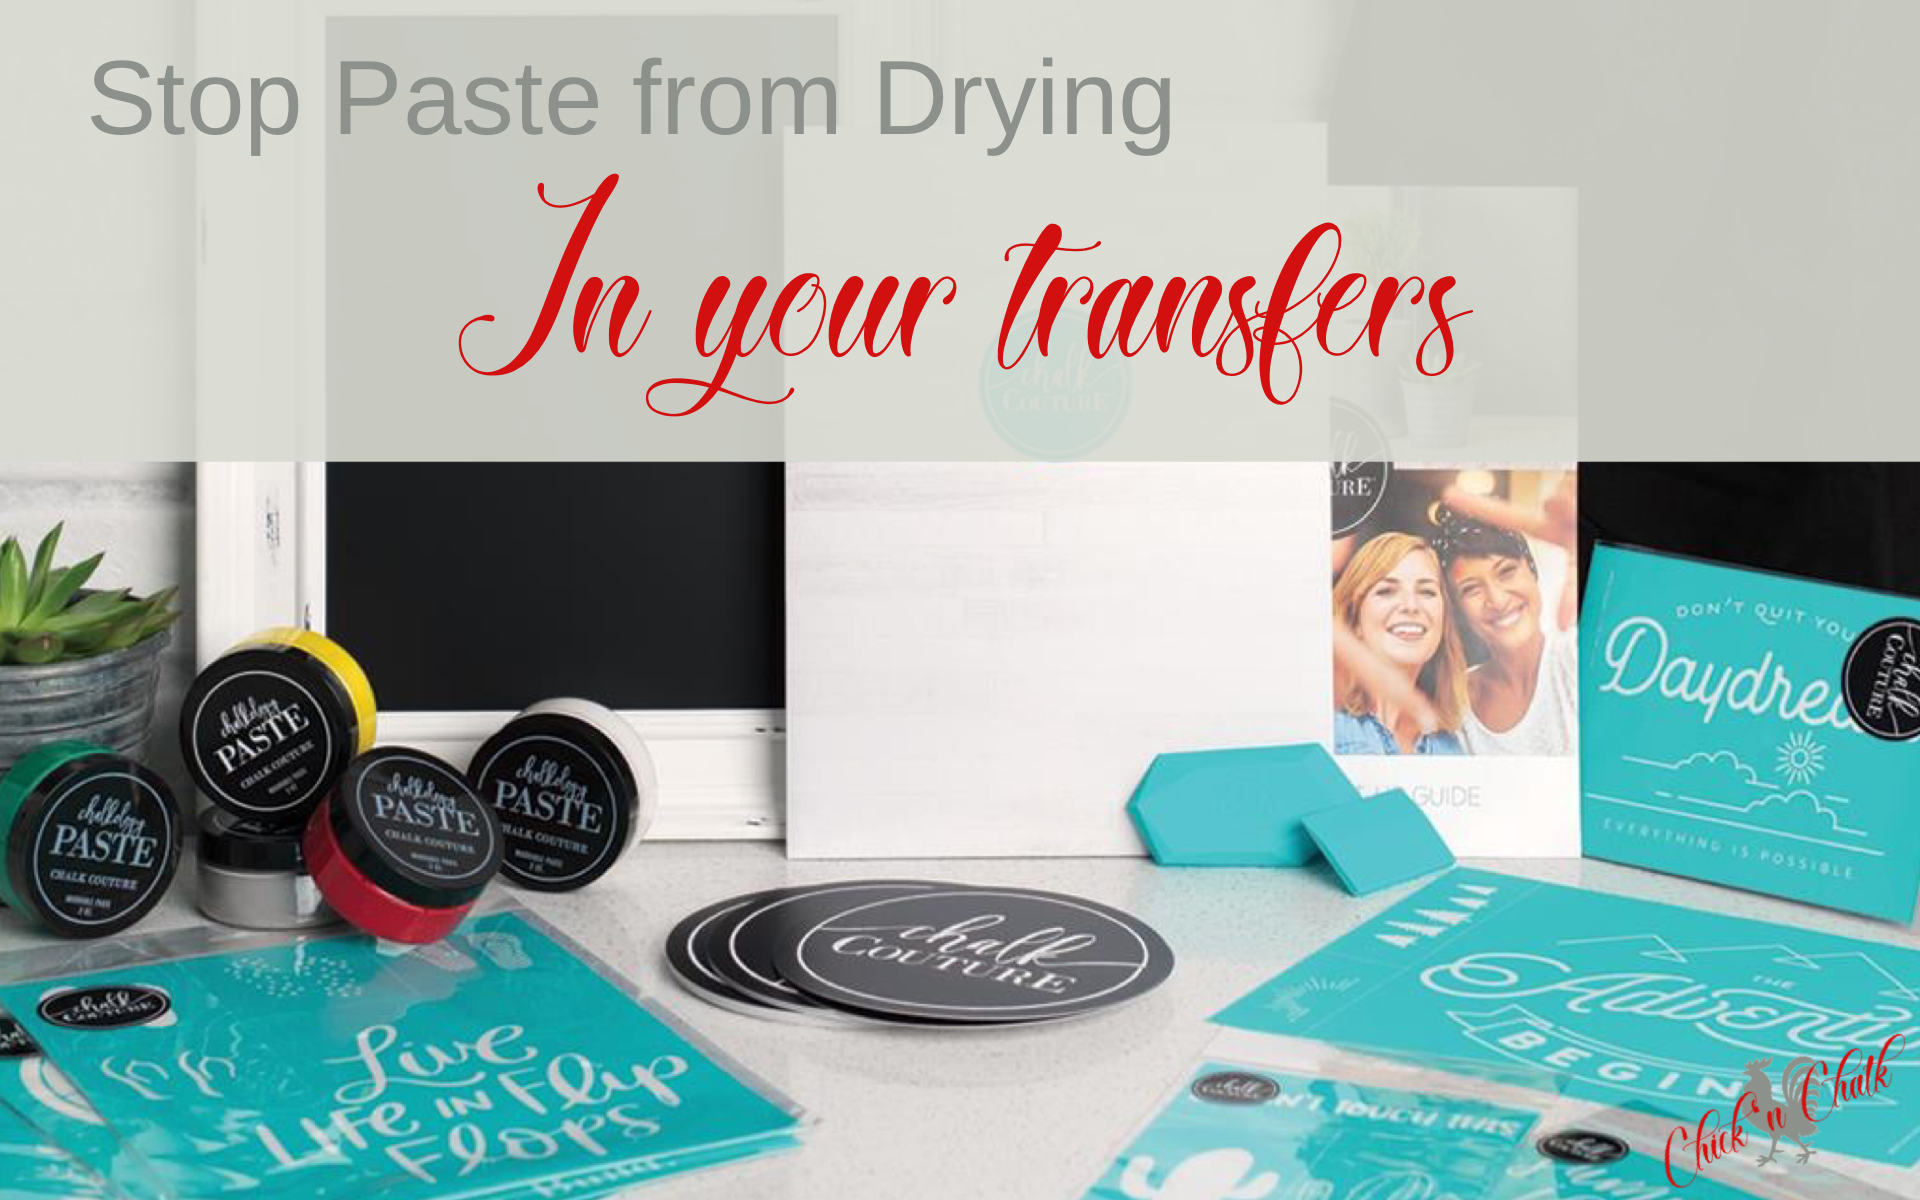 Stop chalk paste from drying in Transfers